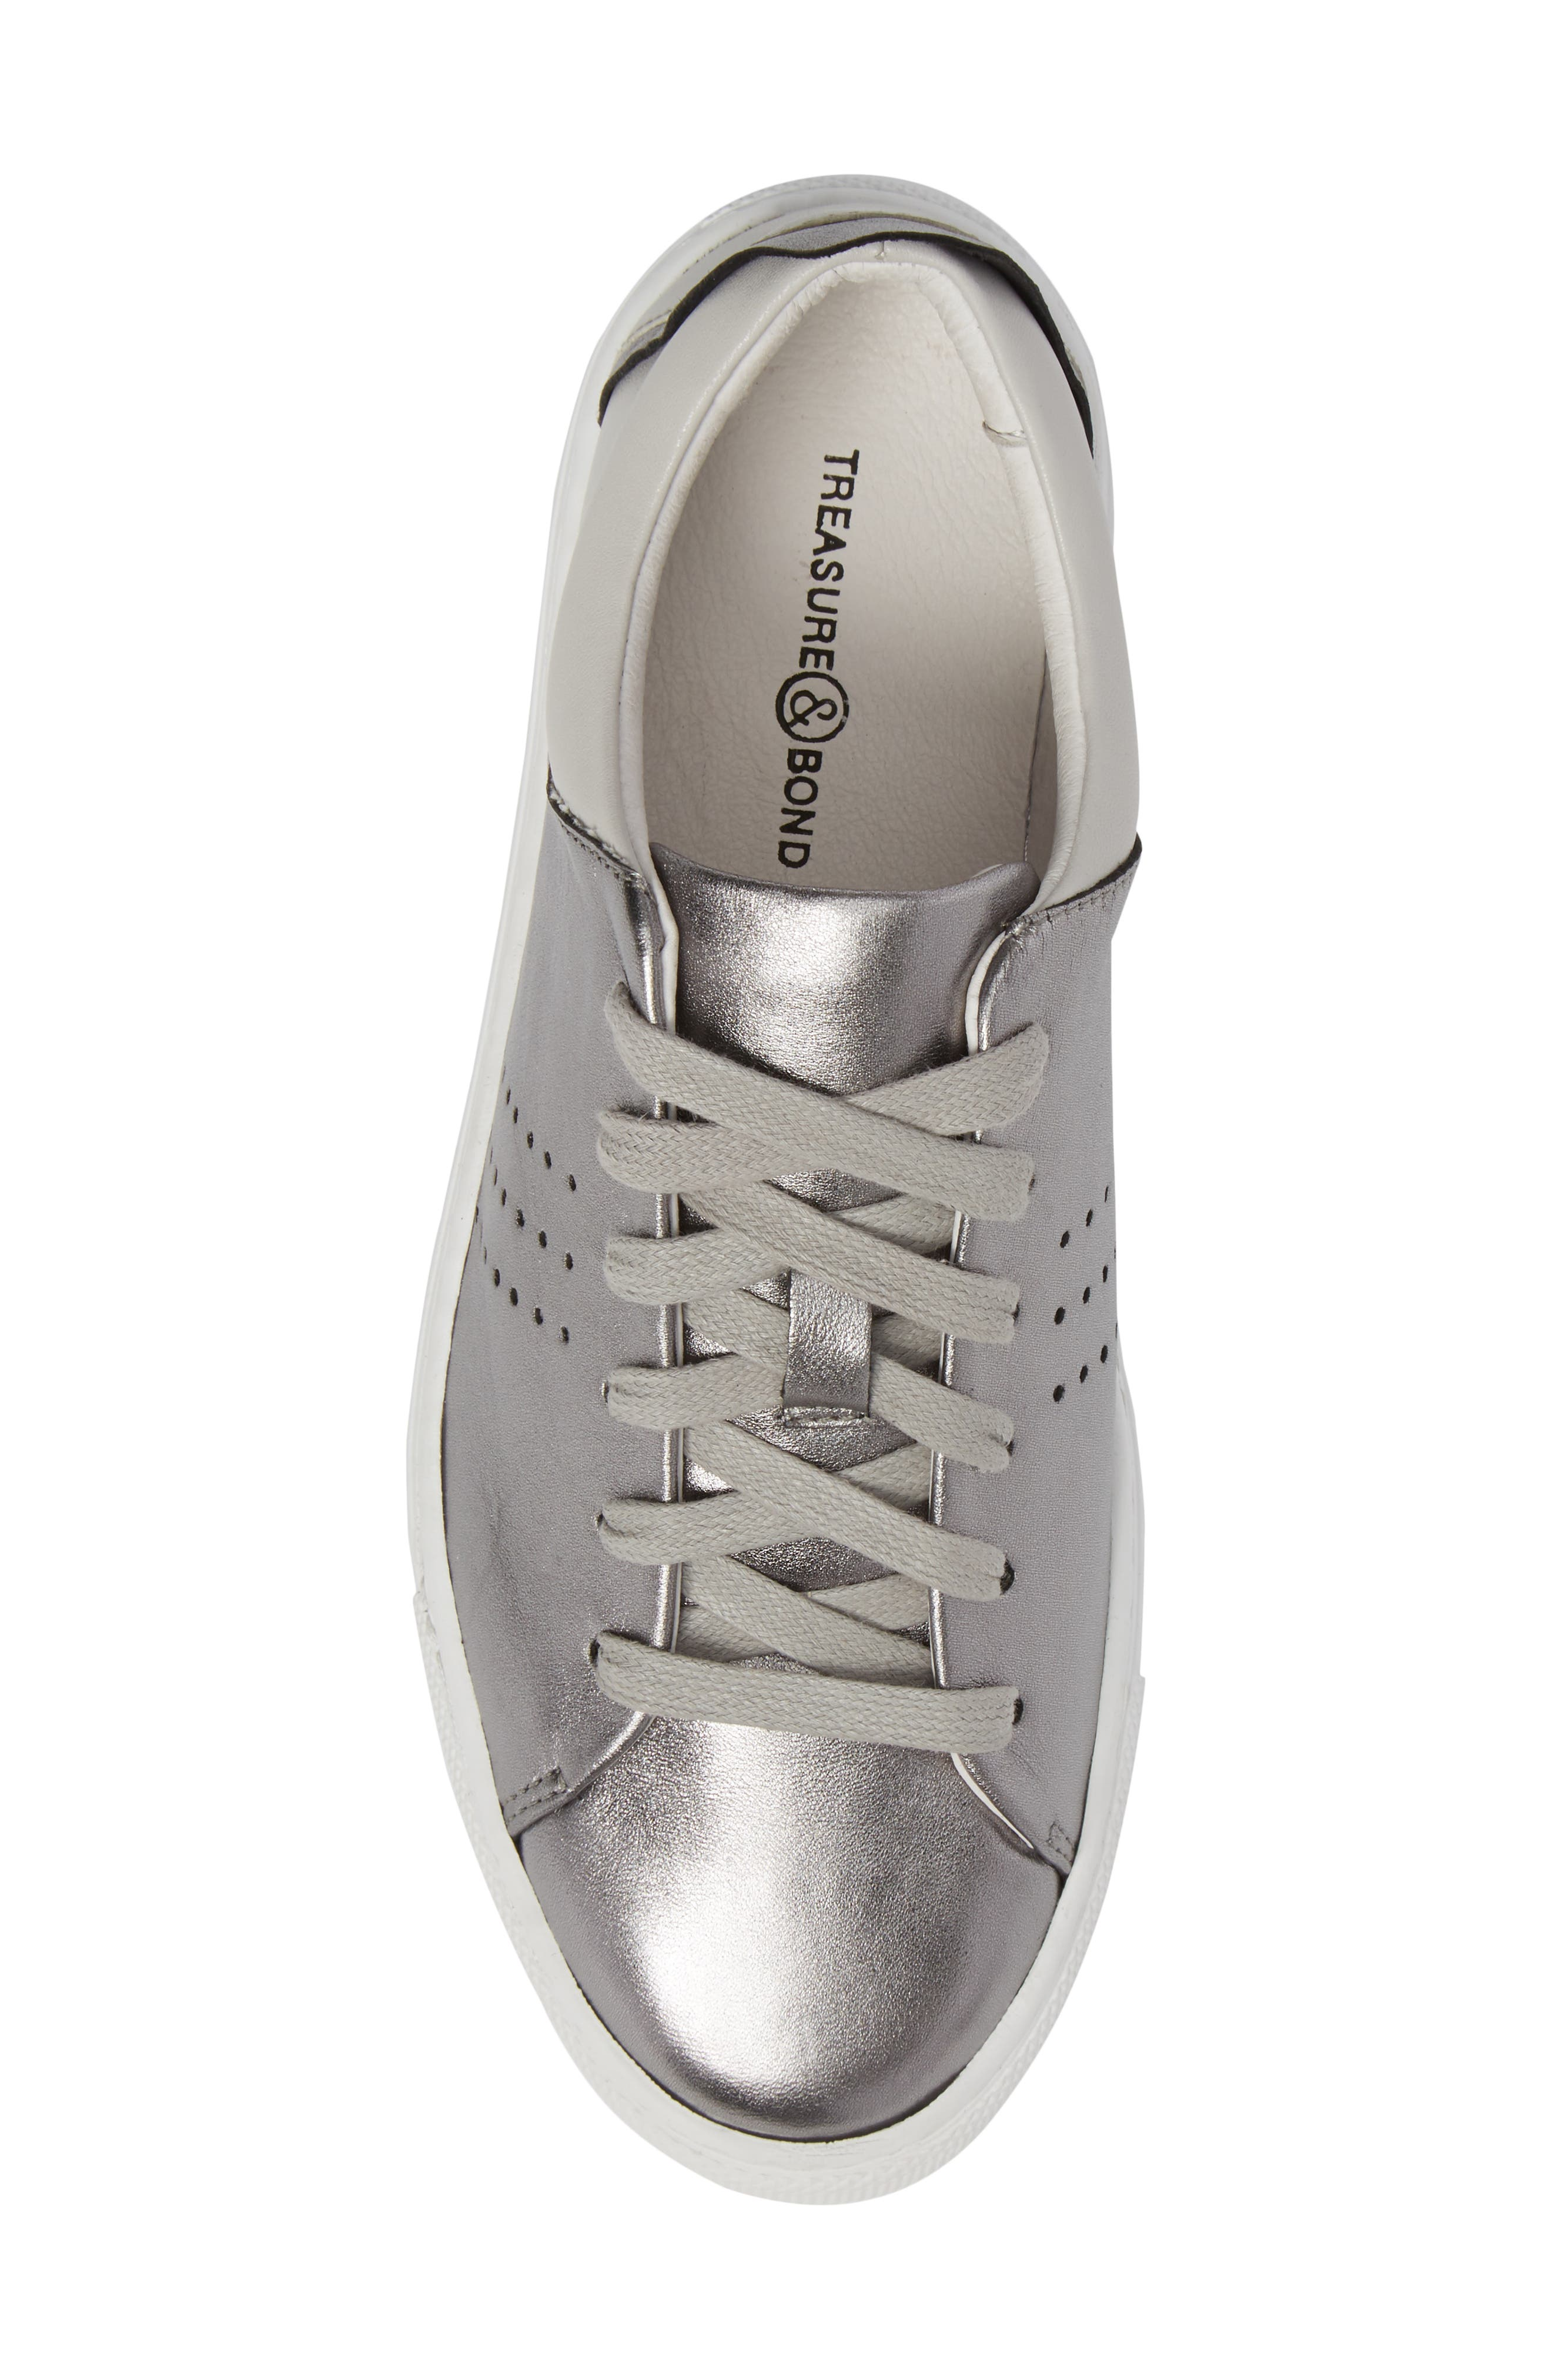 Splits Two-Tone Perforated Sneaker,                             Alternate thumbnail 5, color,                             045